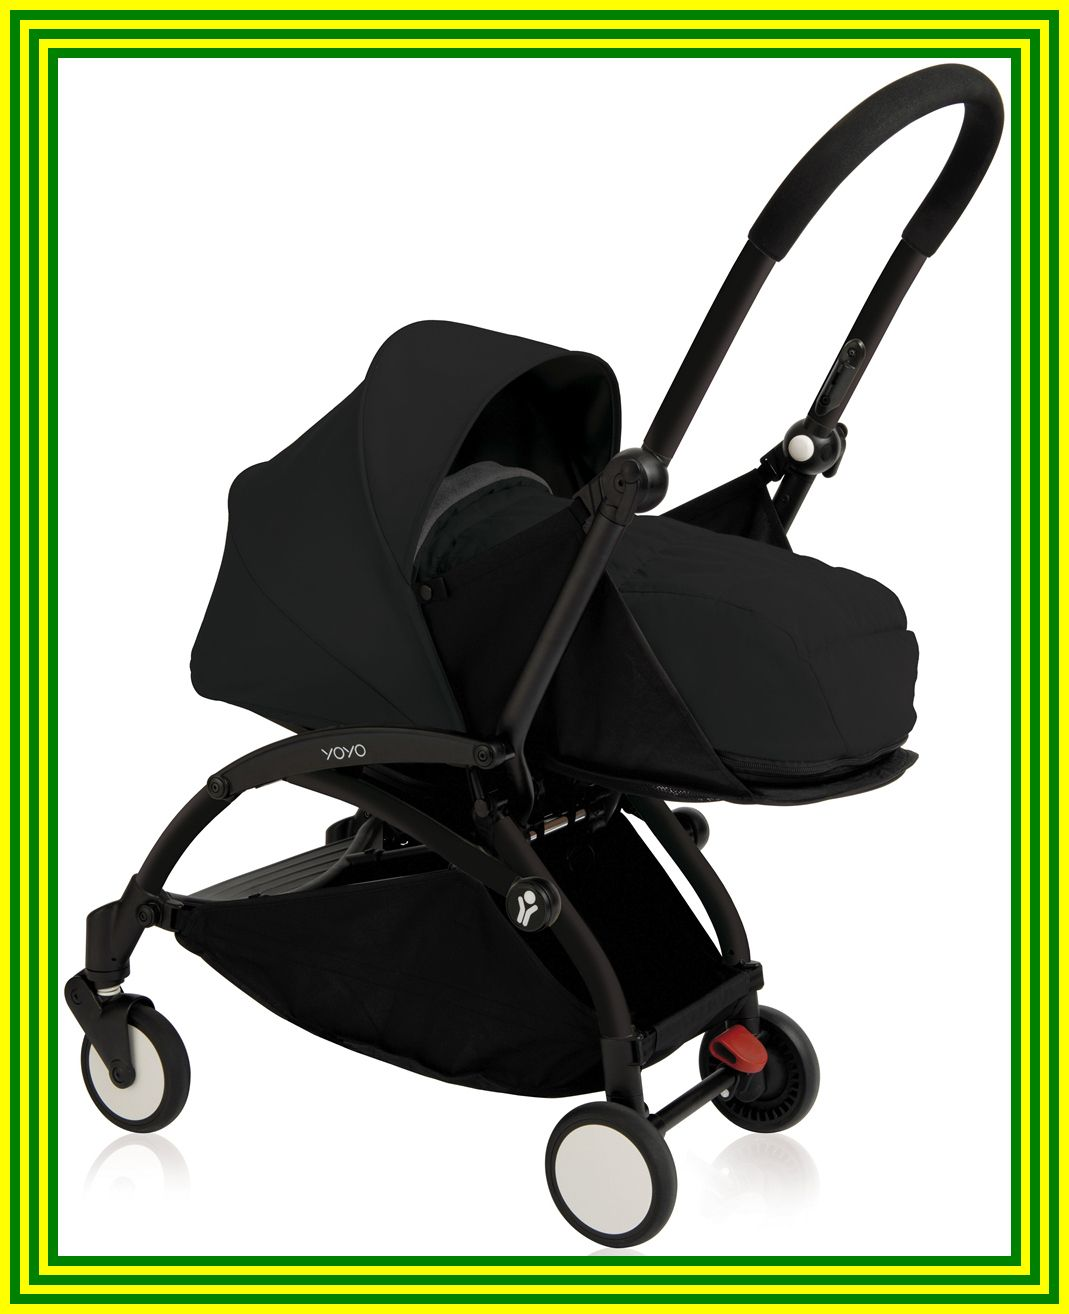 52 reference of baby stroller black friday sale in 2020